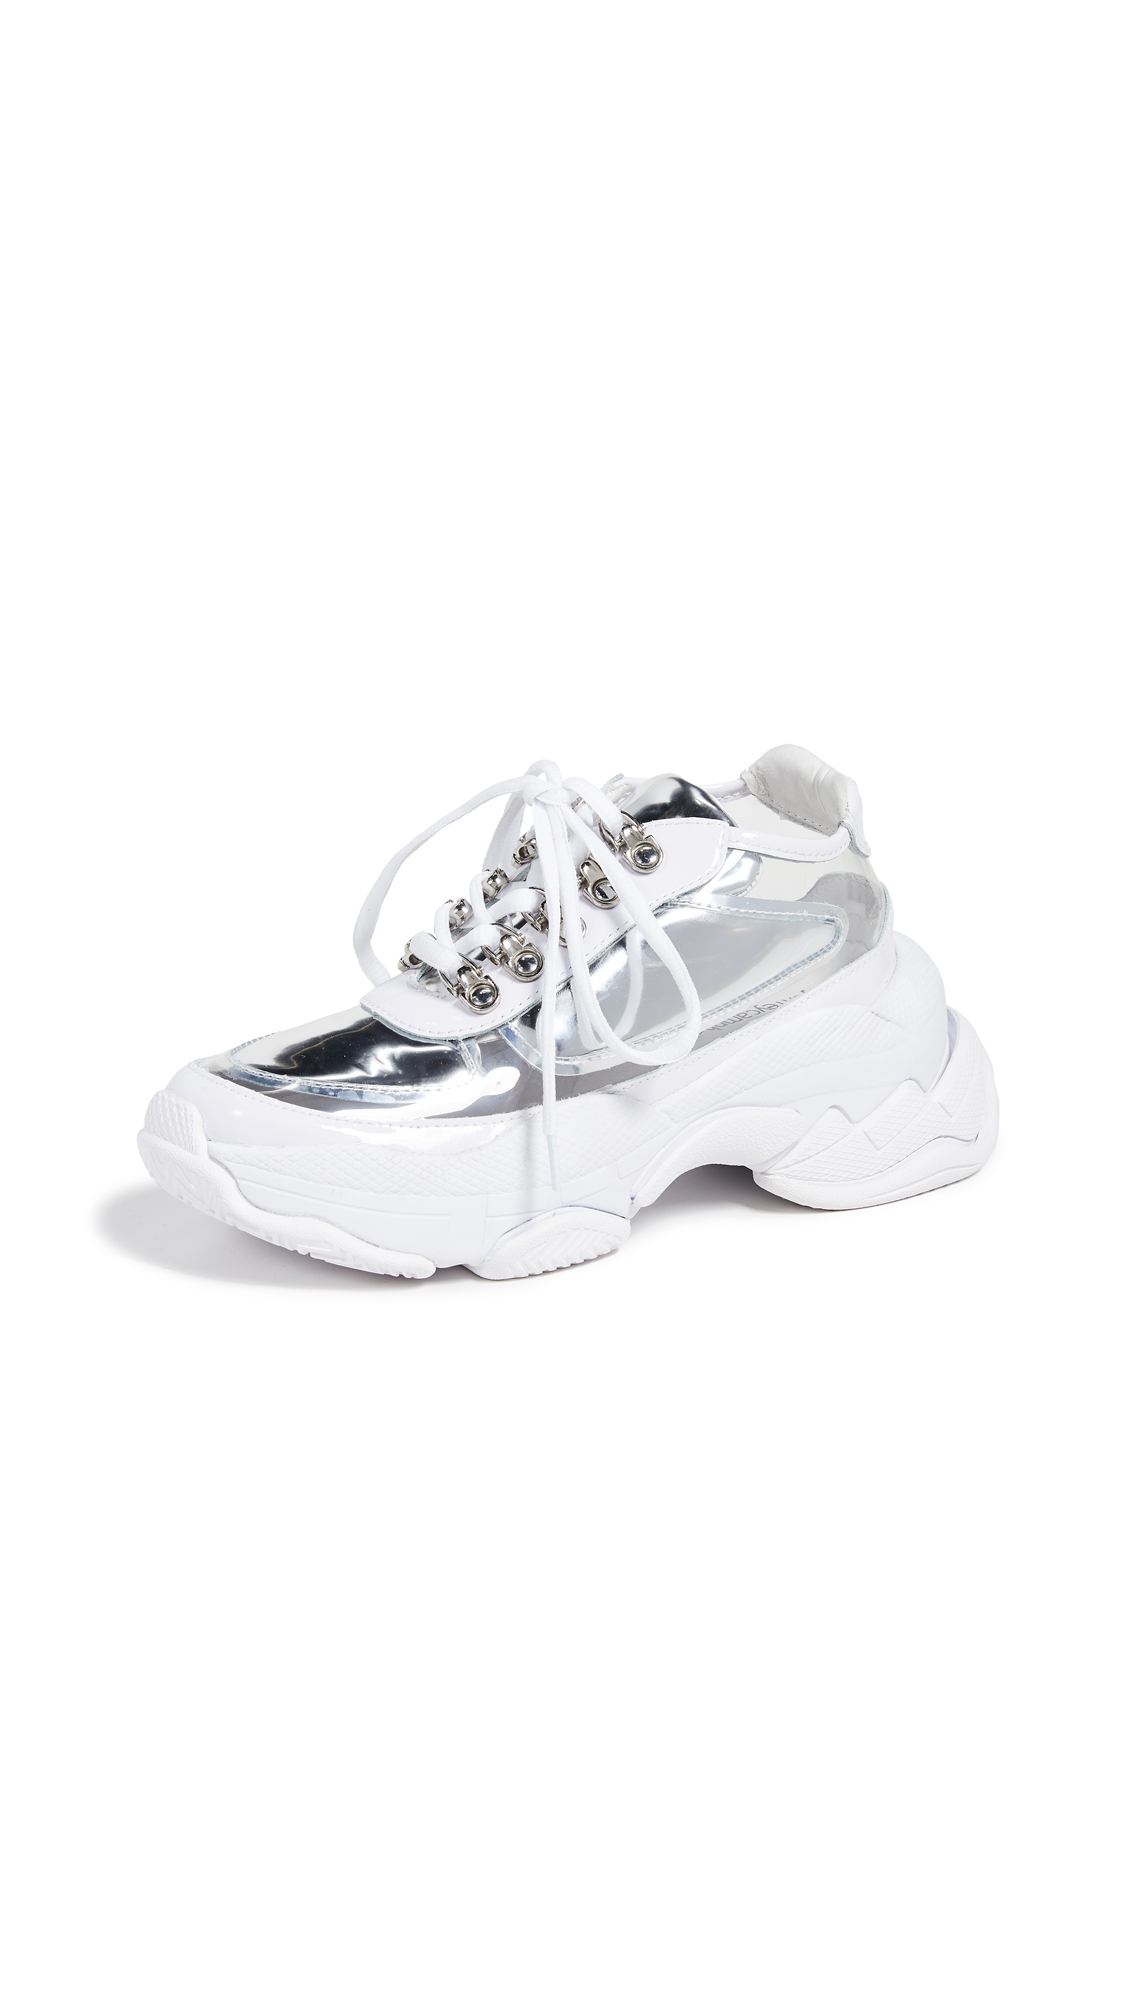 Jeffrey Campbell LO-FI Sneakers - Silver/Clear